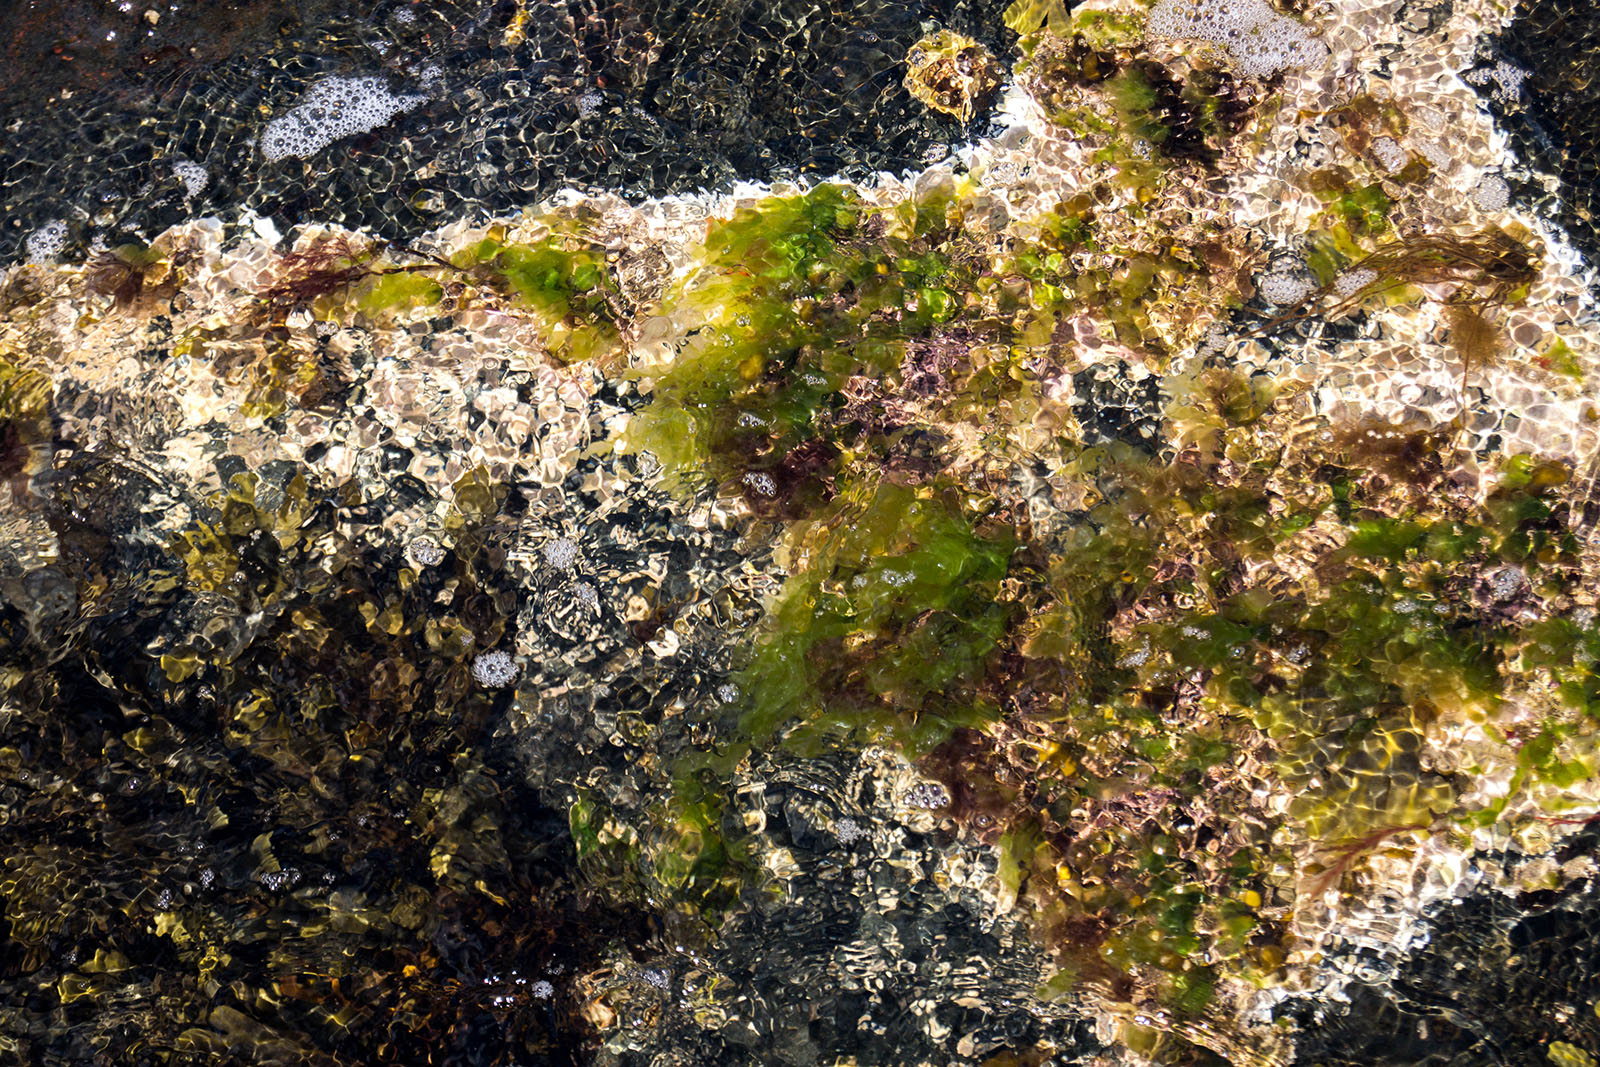 Underwater Moss copyright @ Ashley Bremer